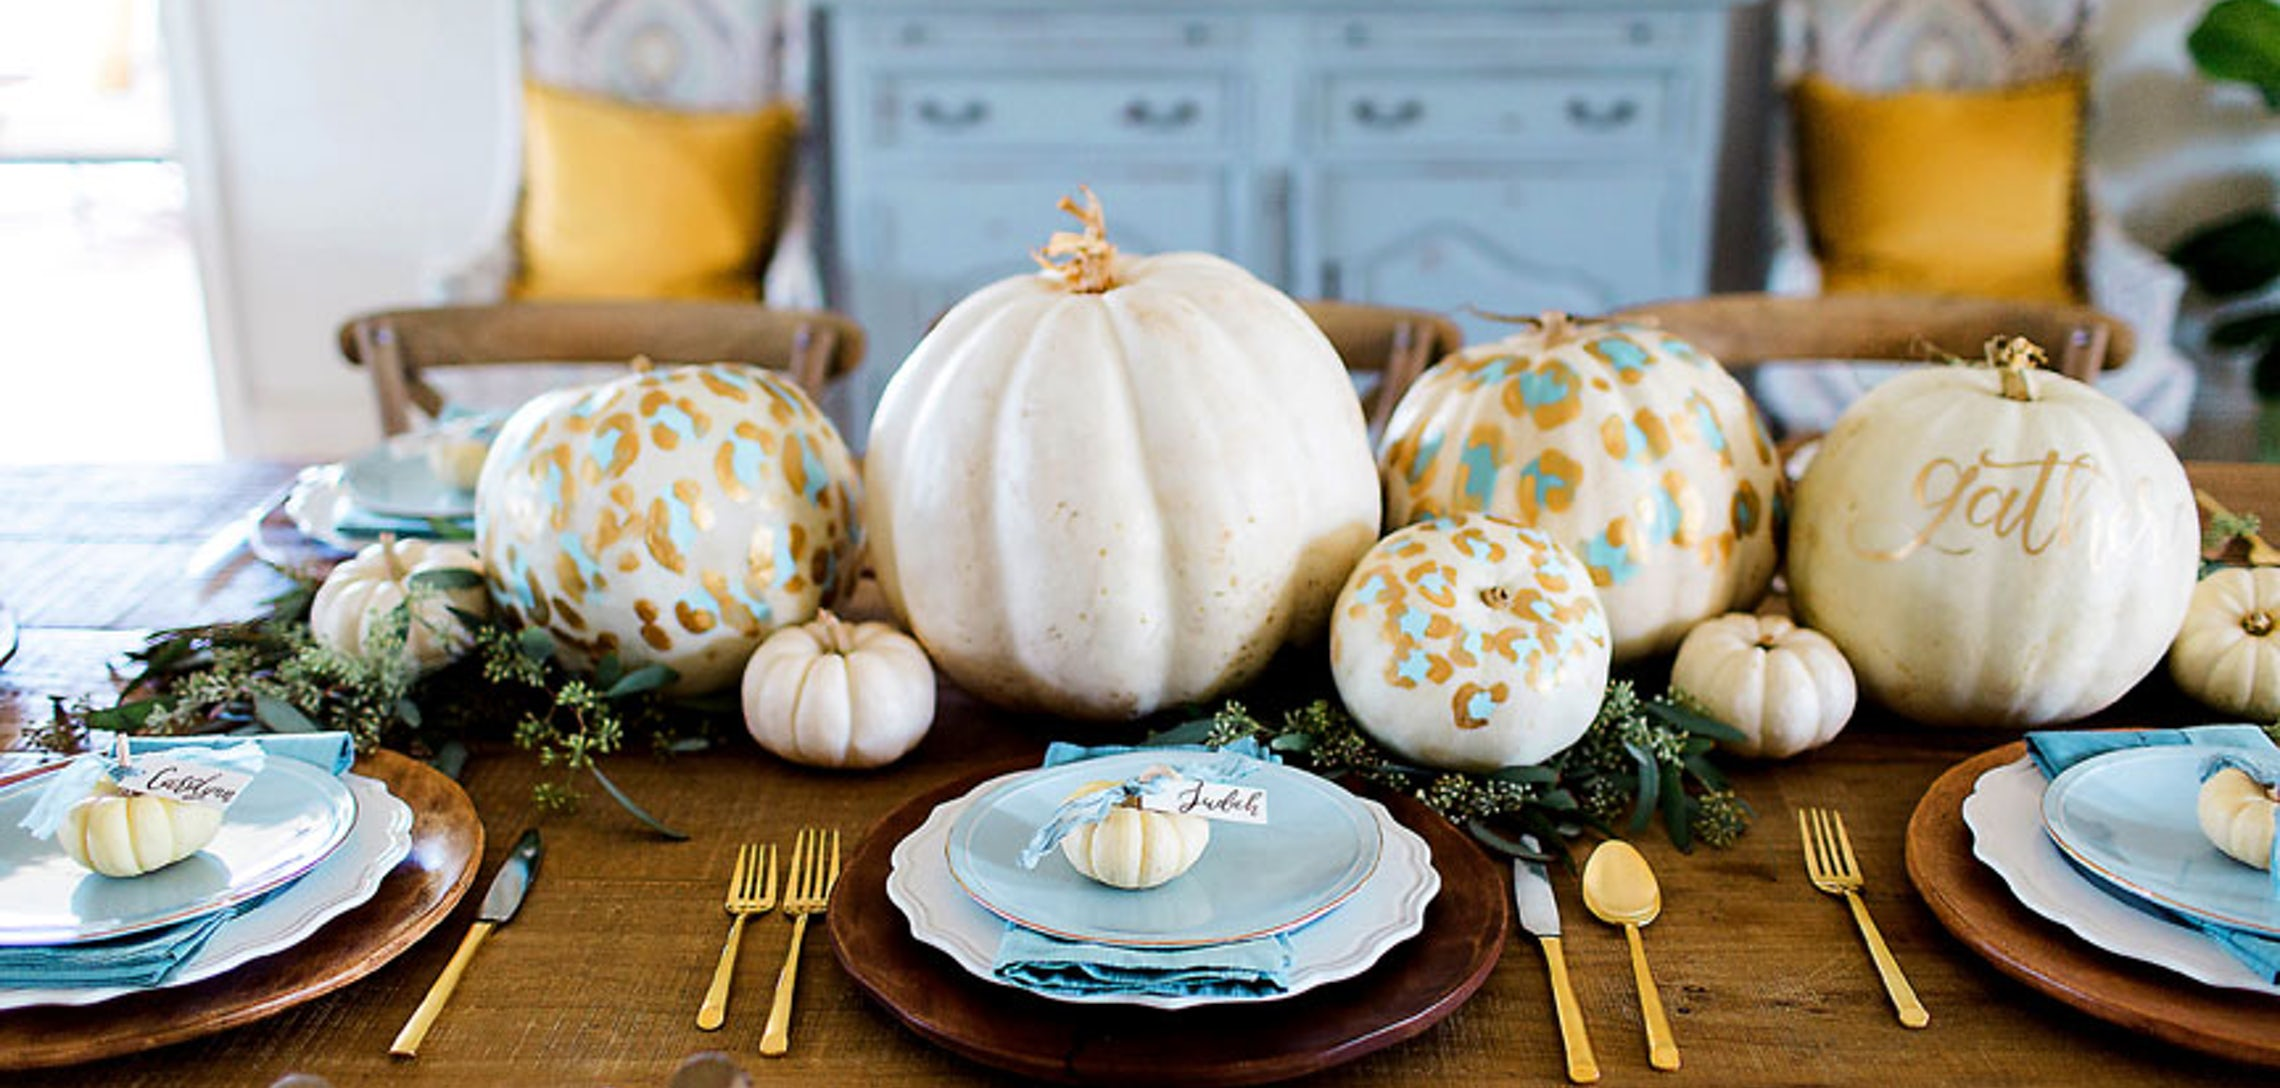 Feast for the eyes: A non-traditional Thanksgiving table - inRegister